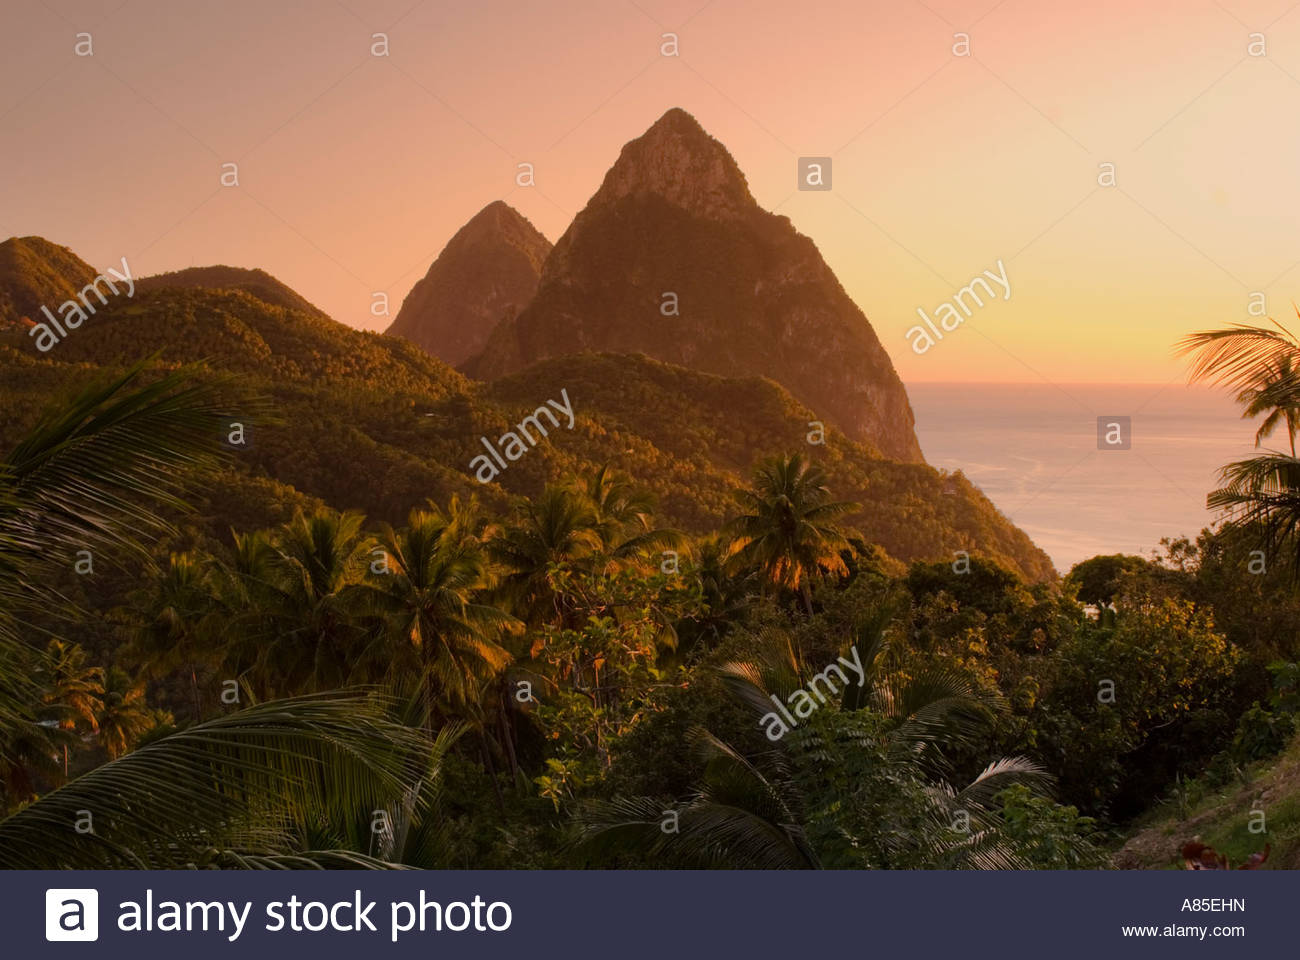 The Pitons, near Soufriere, at sunset; St Lucia, Windward Islands, Caribbean. - Stock Image